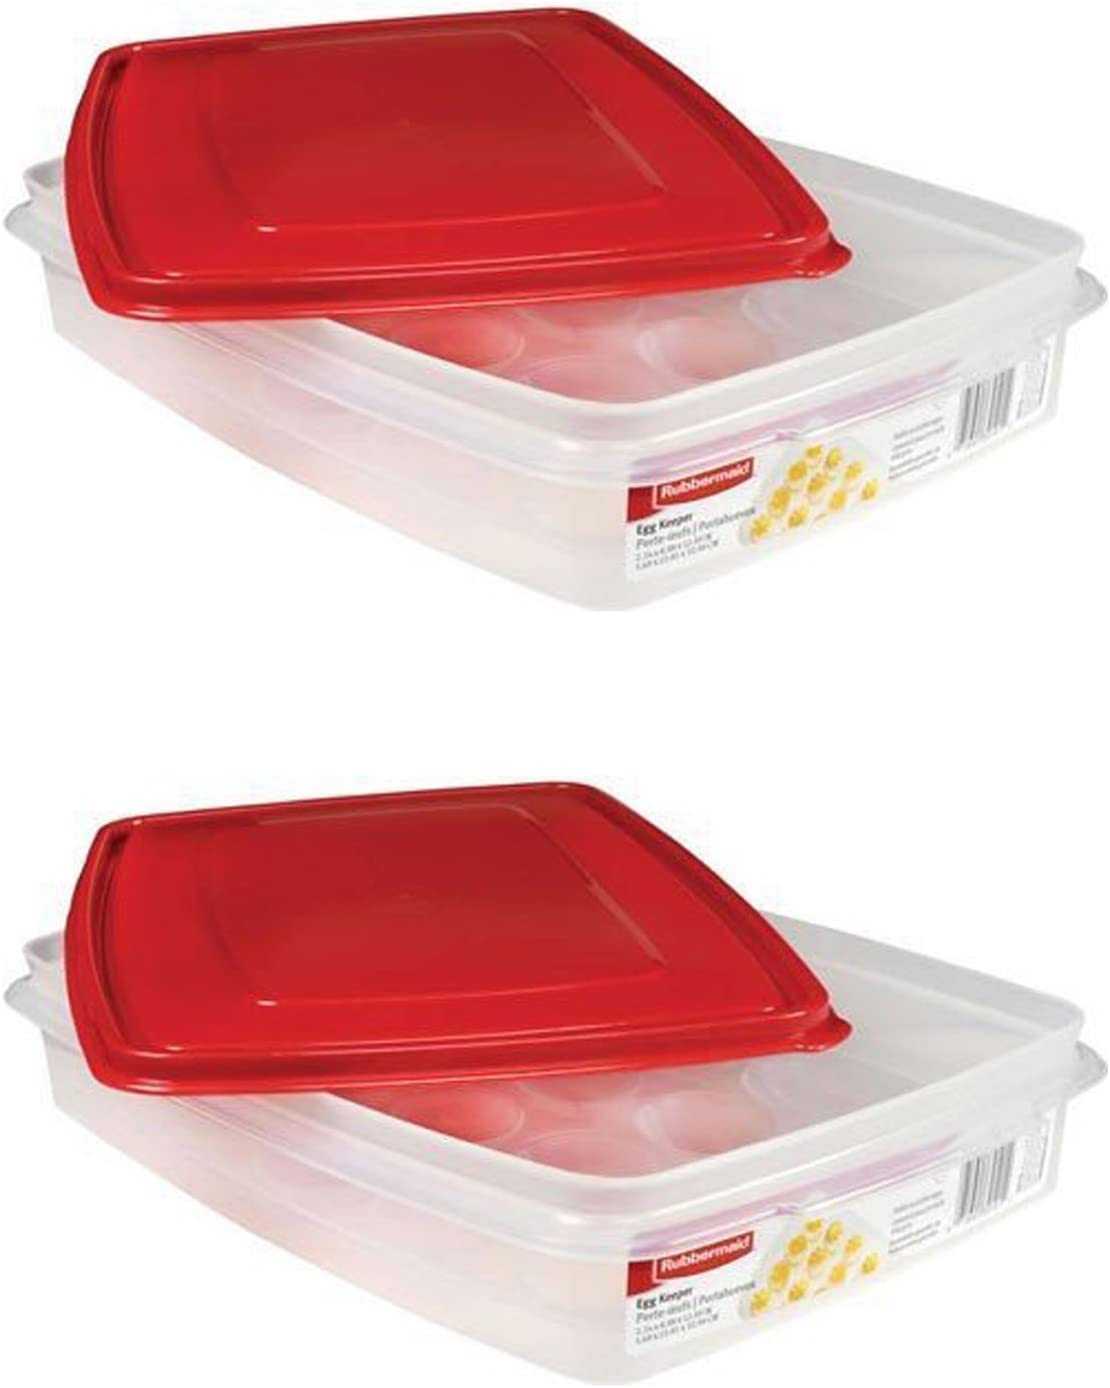 Rubbermaid - Egg Keeper-red Cover, 2 Pk, Holds 20 Jumbo Eggs, Clear, Plastic